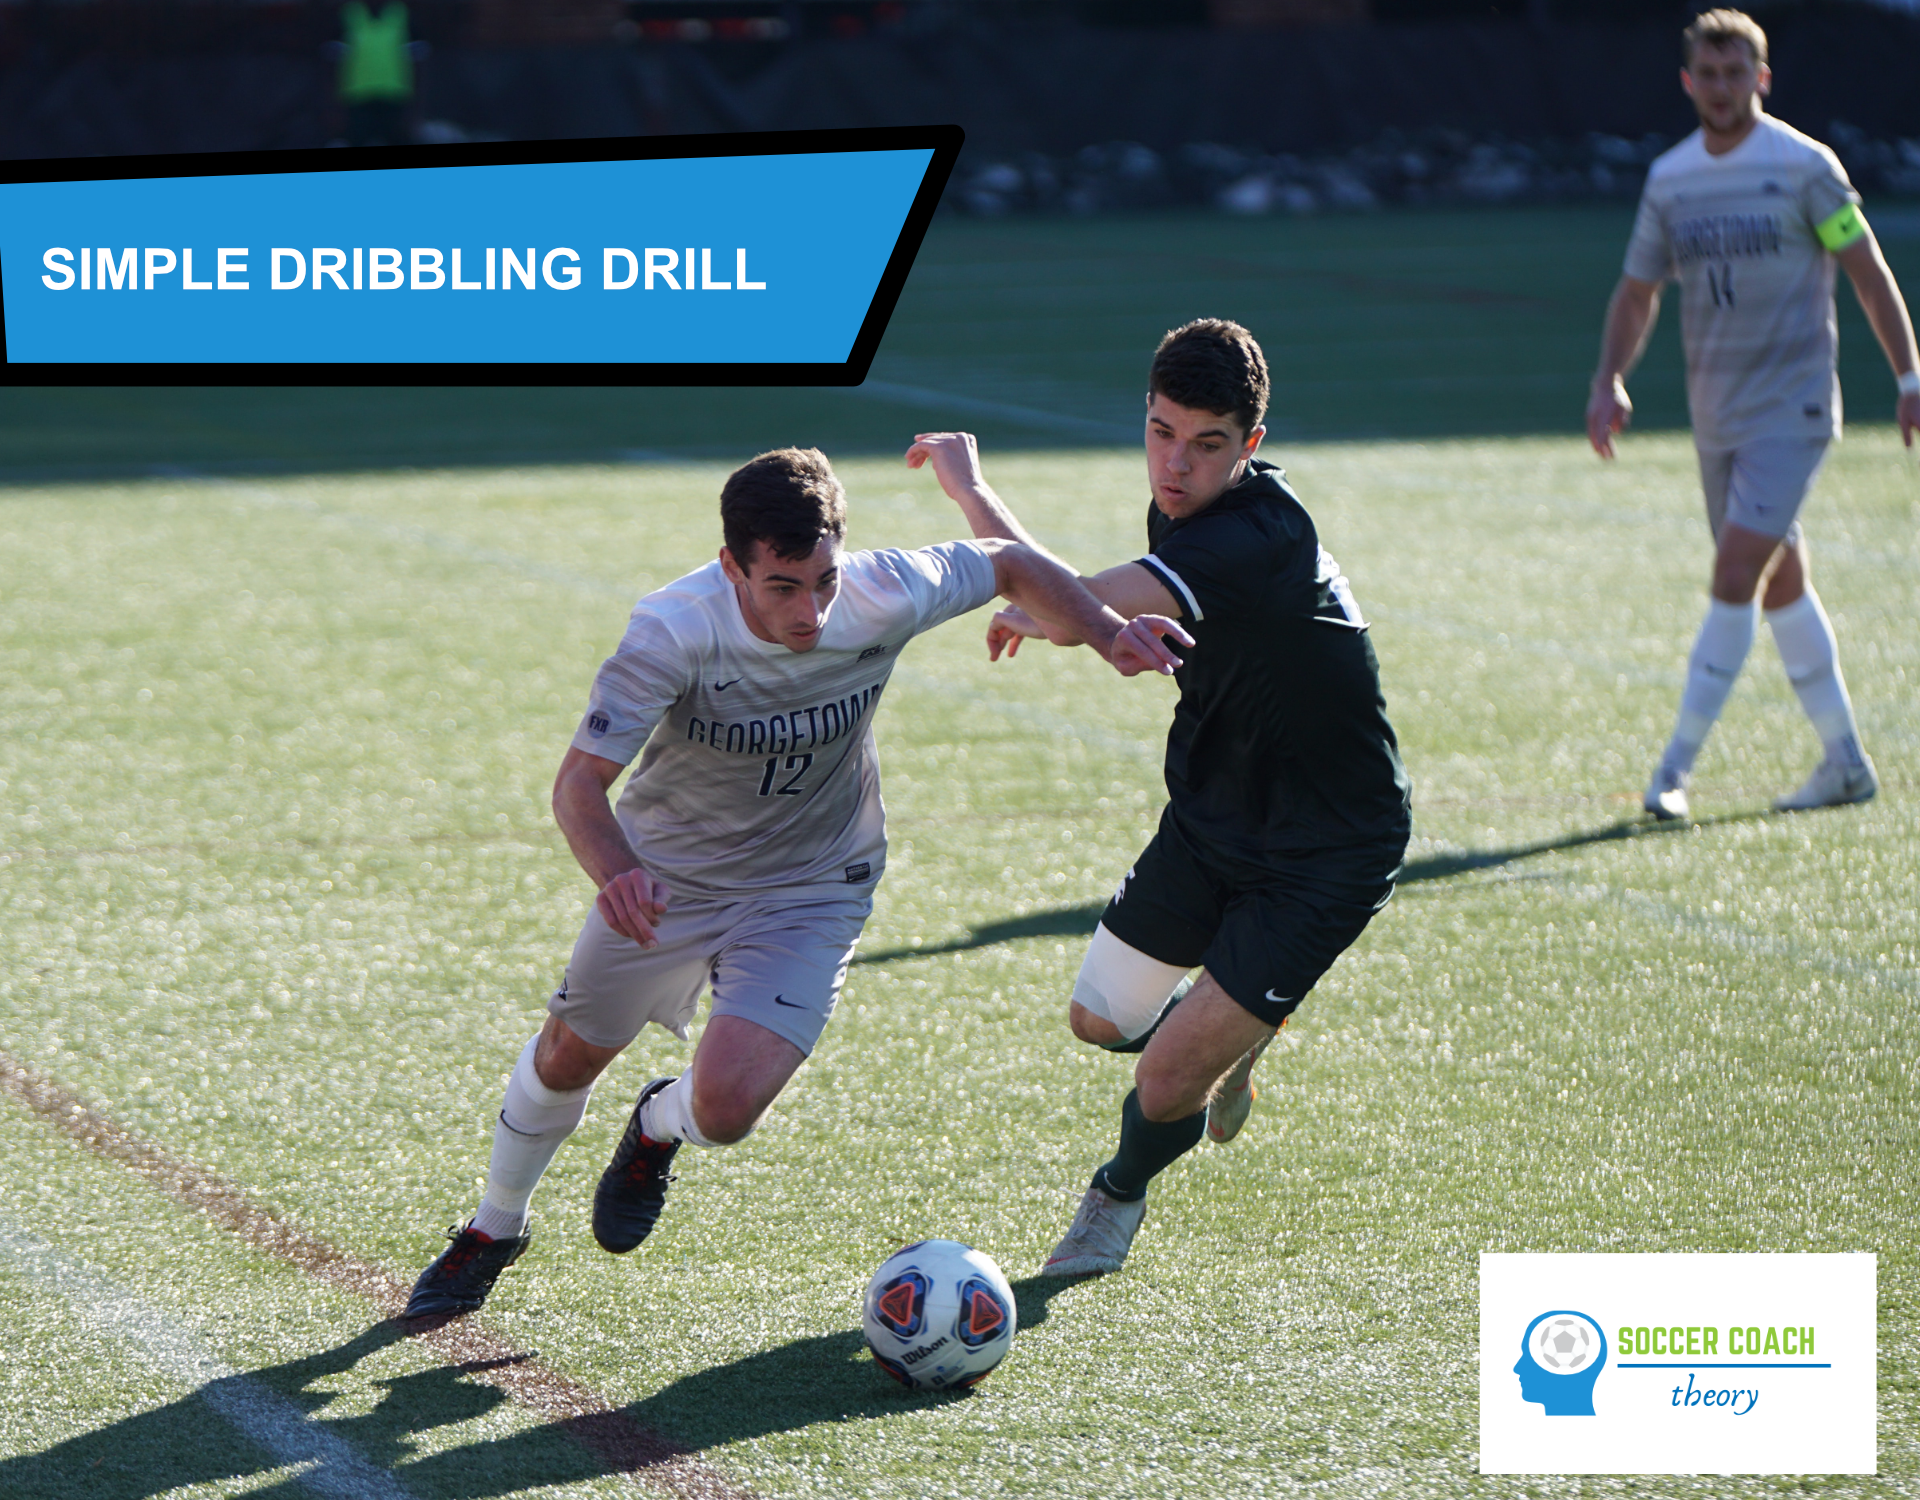 Soccer dribbling drill (simple) cover